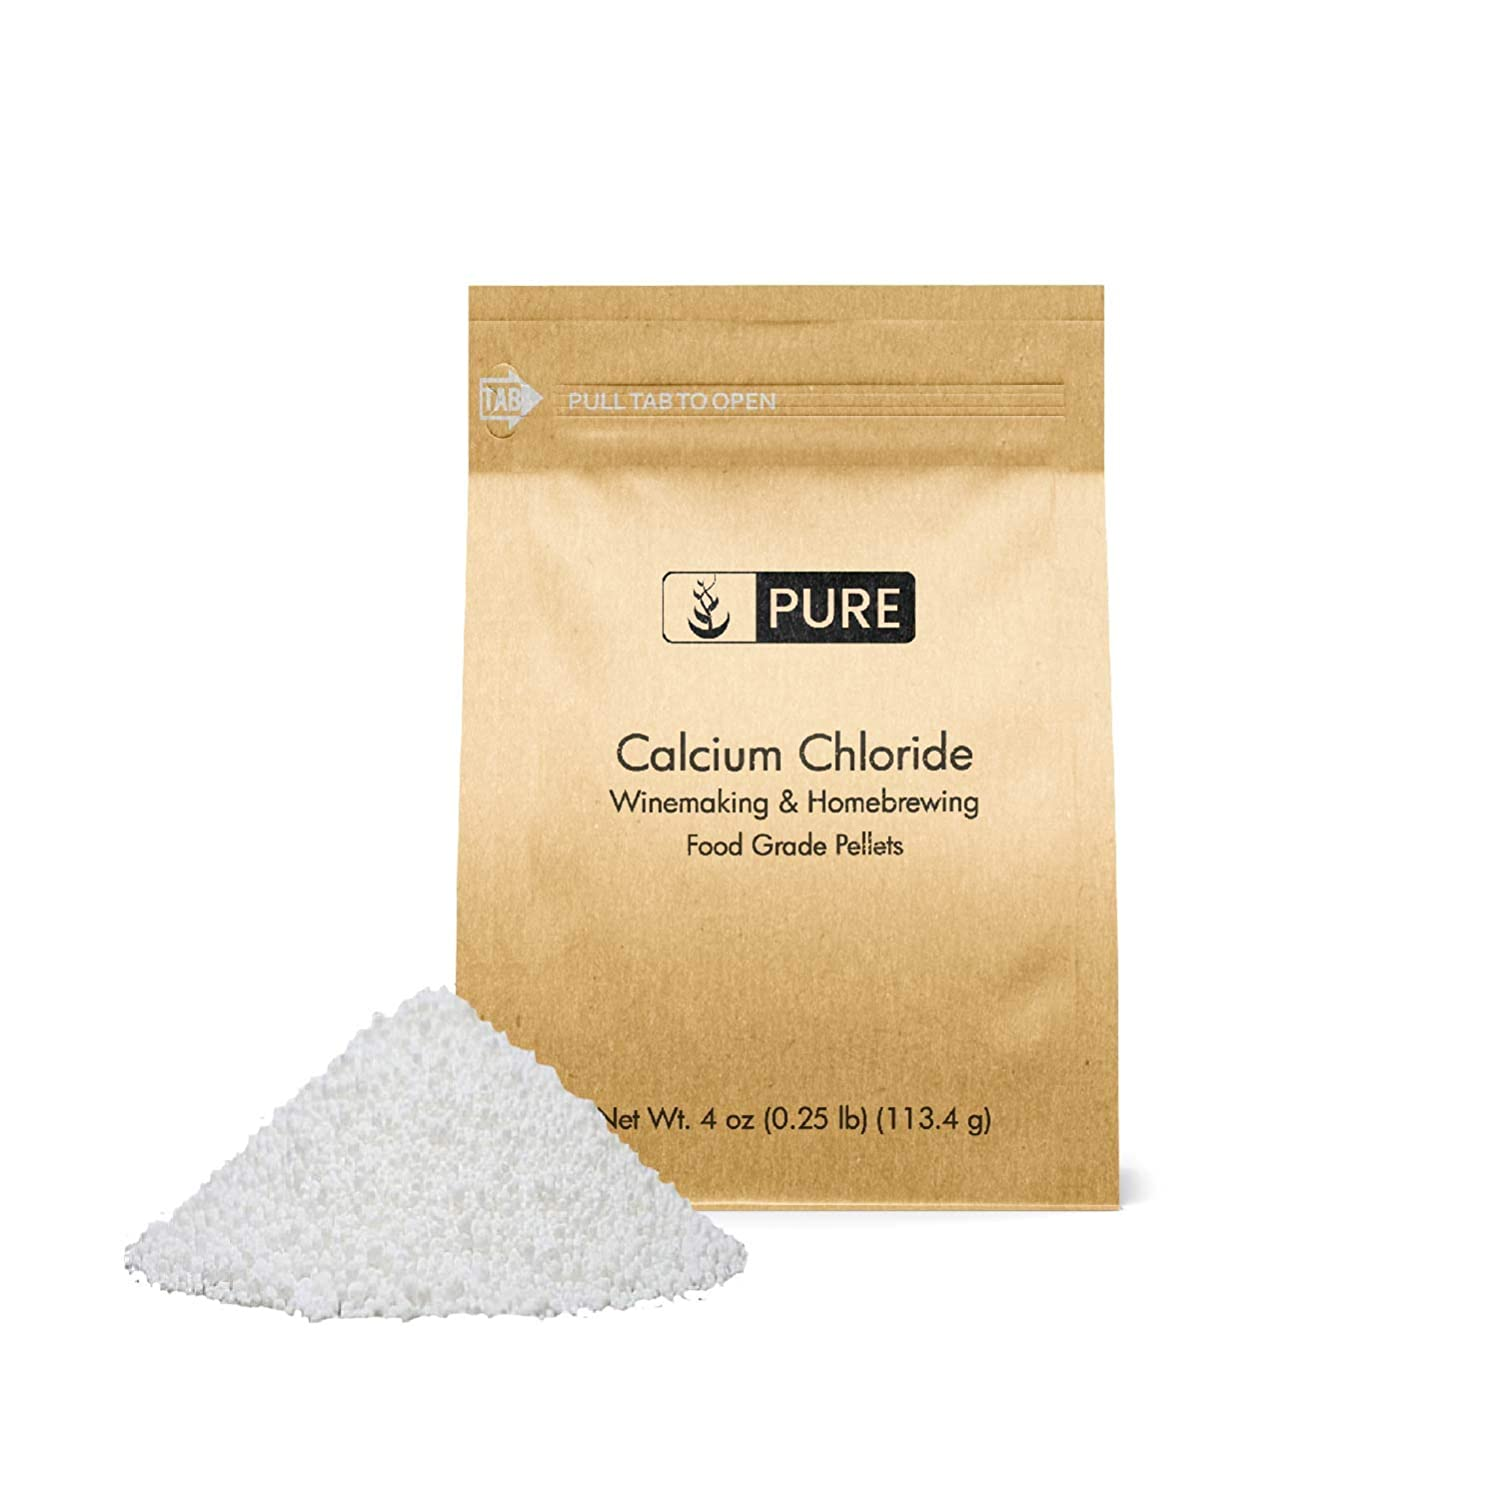 Calcium Chloride (4 oz.) by Pure Organic Ingredients, Eco-Friendly Packaging, Highest Quality, Food Grade, Wine Making, Home Brew, Cheese Making 61DGEyZp1oL